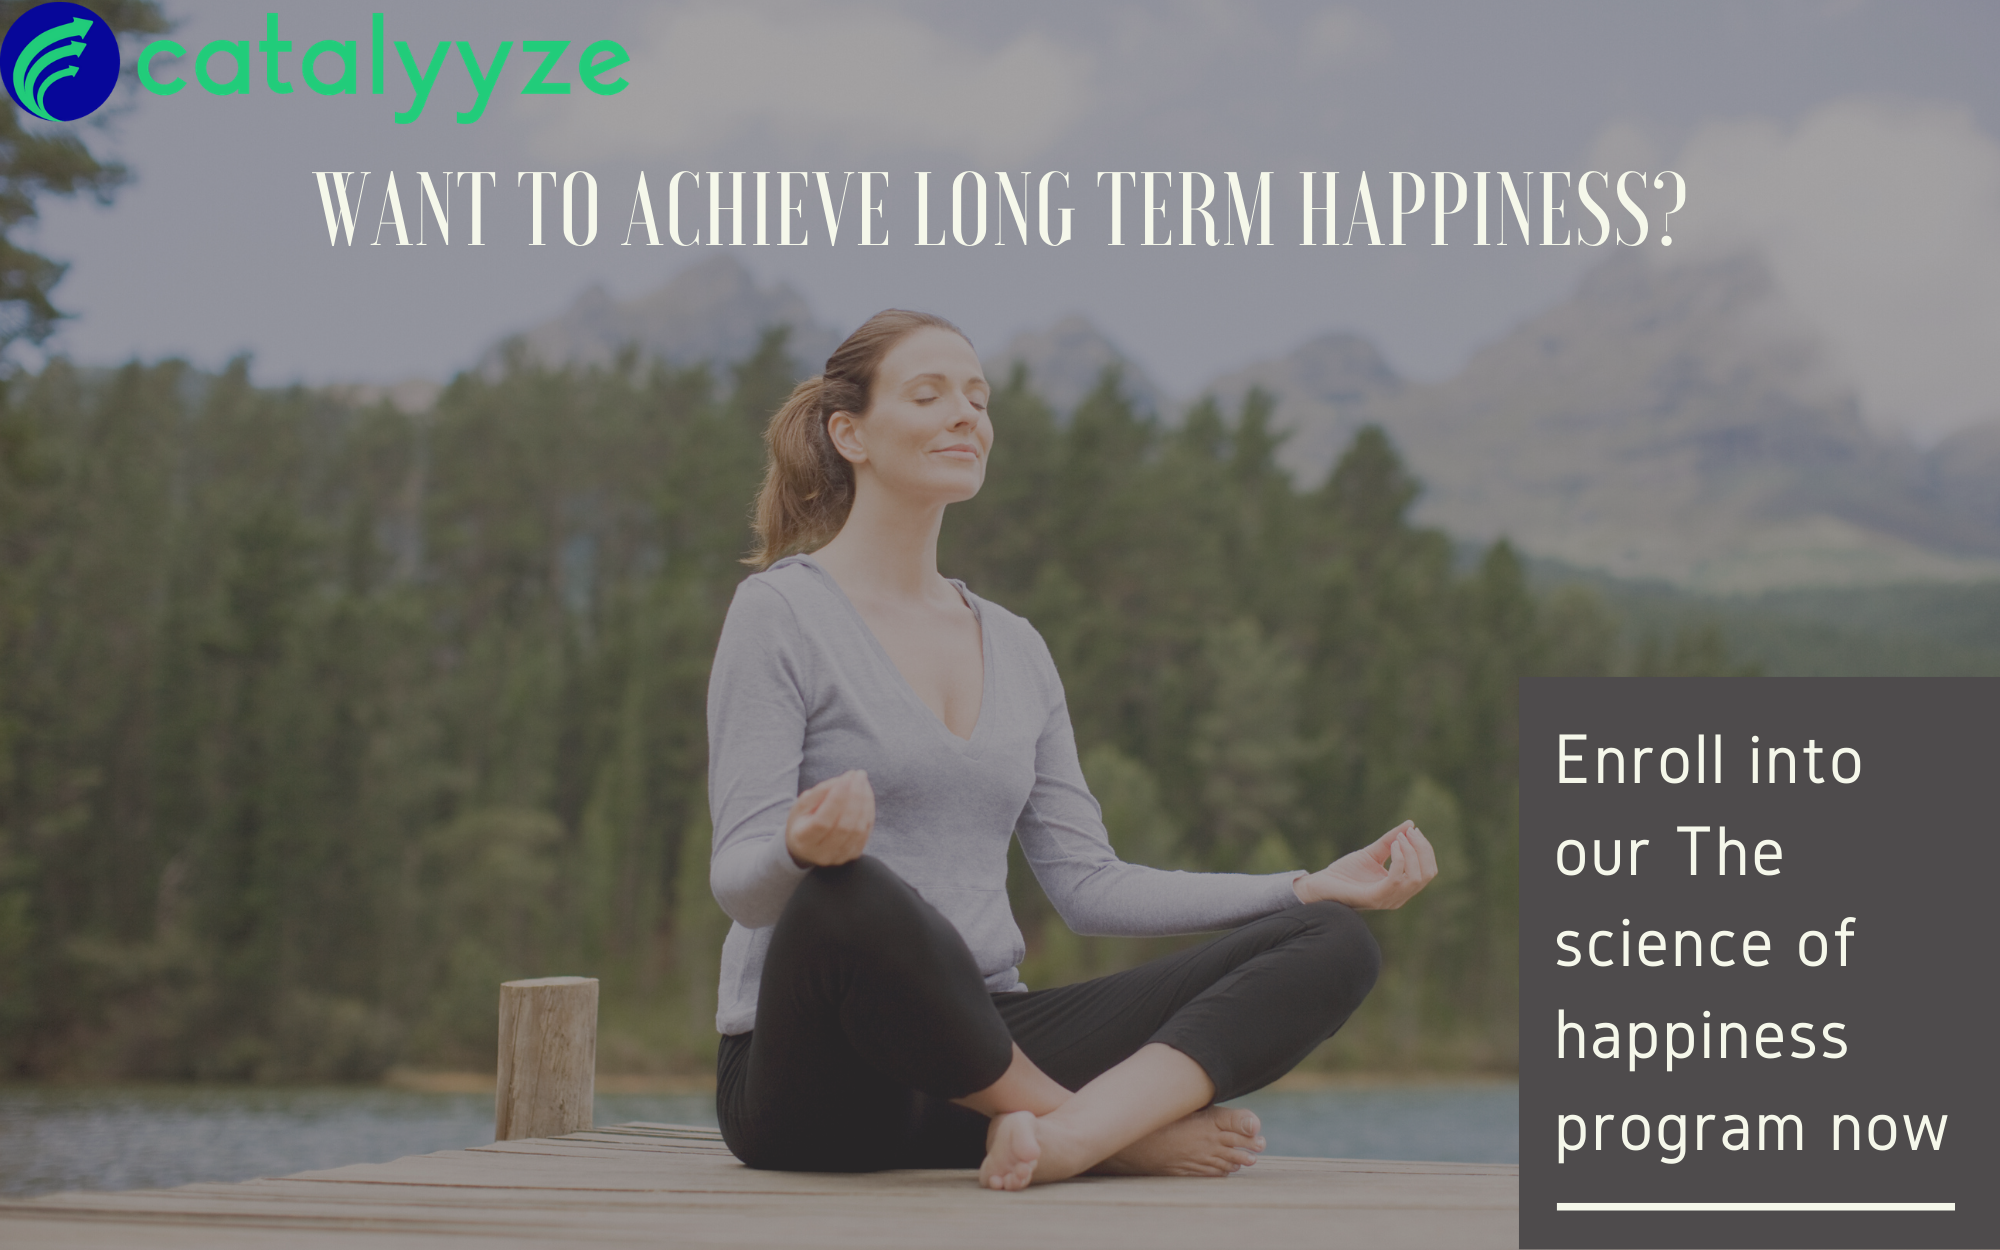 The science of happiness program